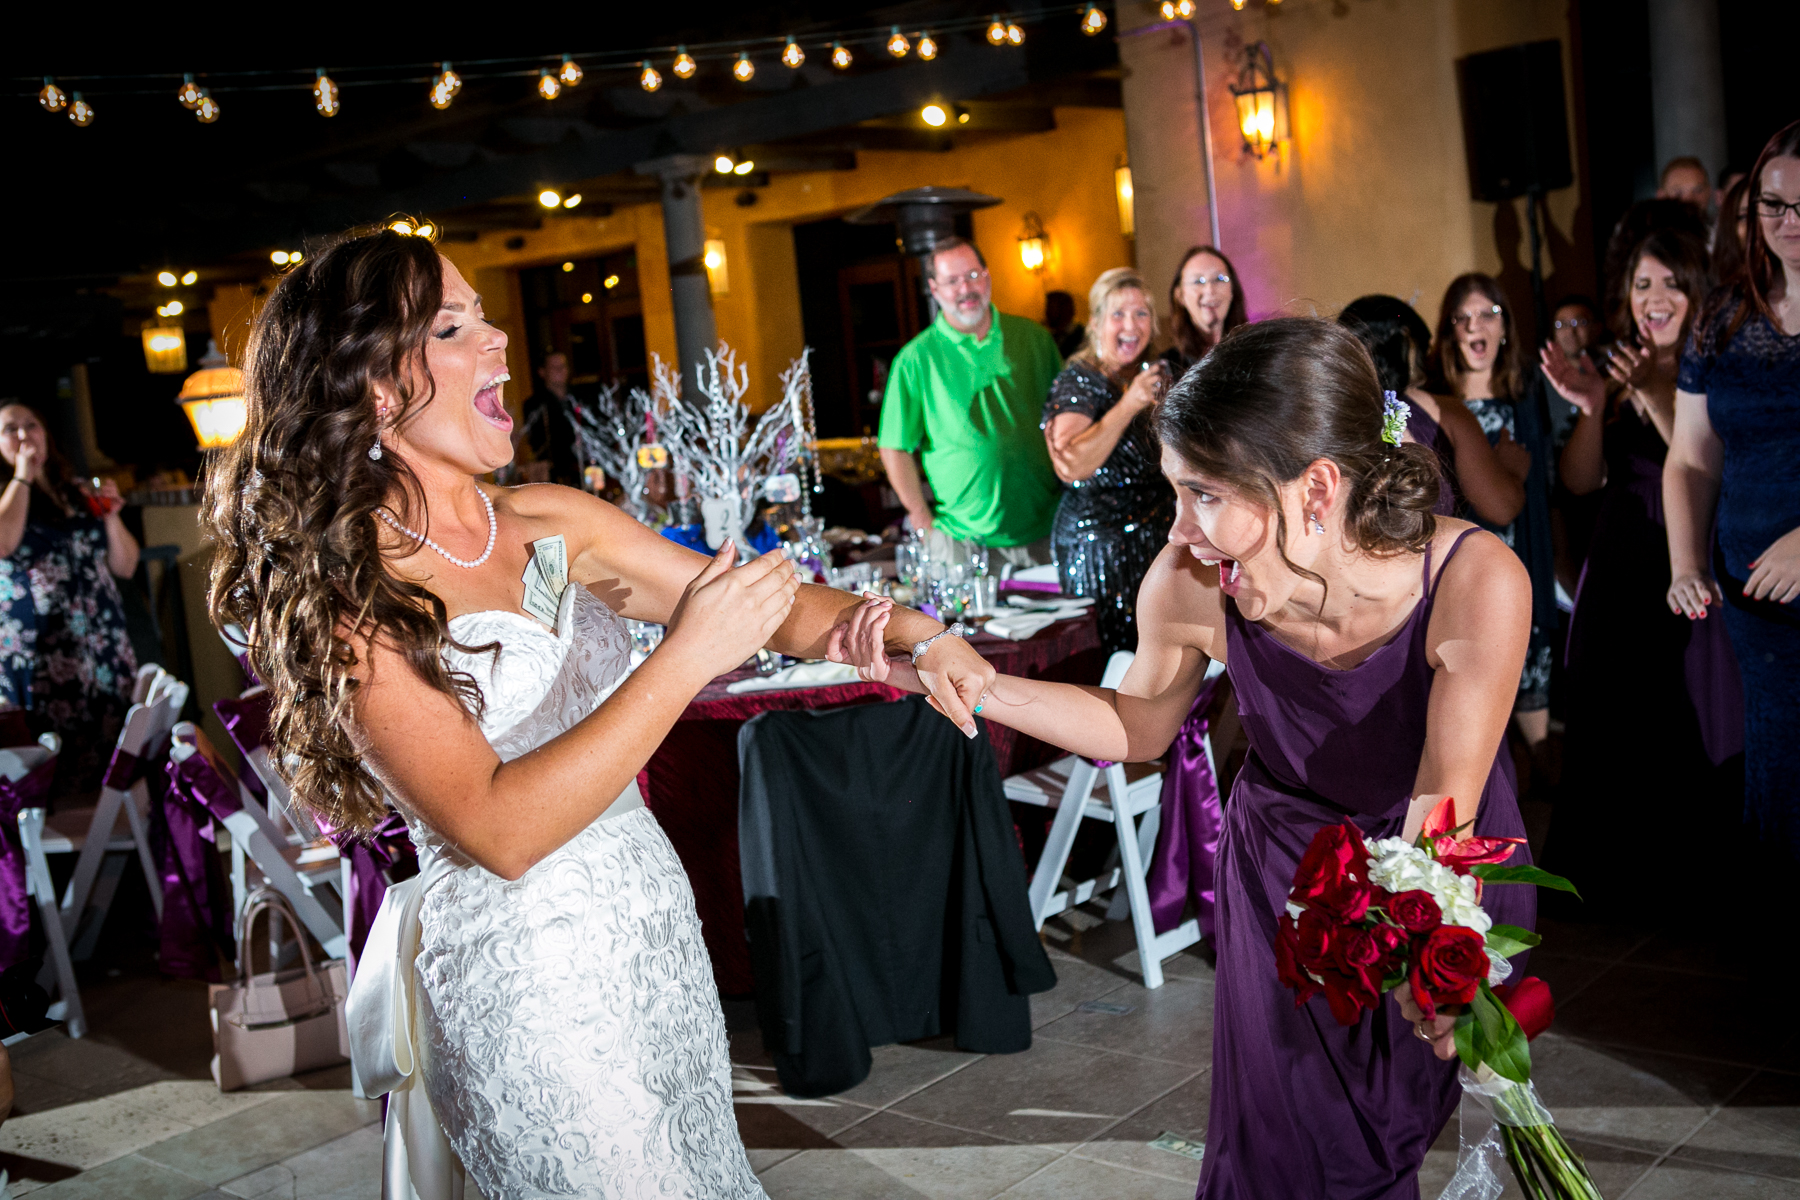 bride's sister catches the bouquet at wedding at chmpion's club at the retreat photos